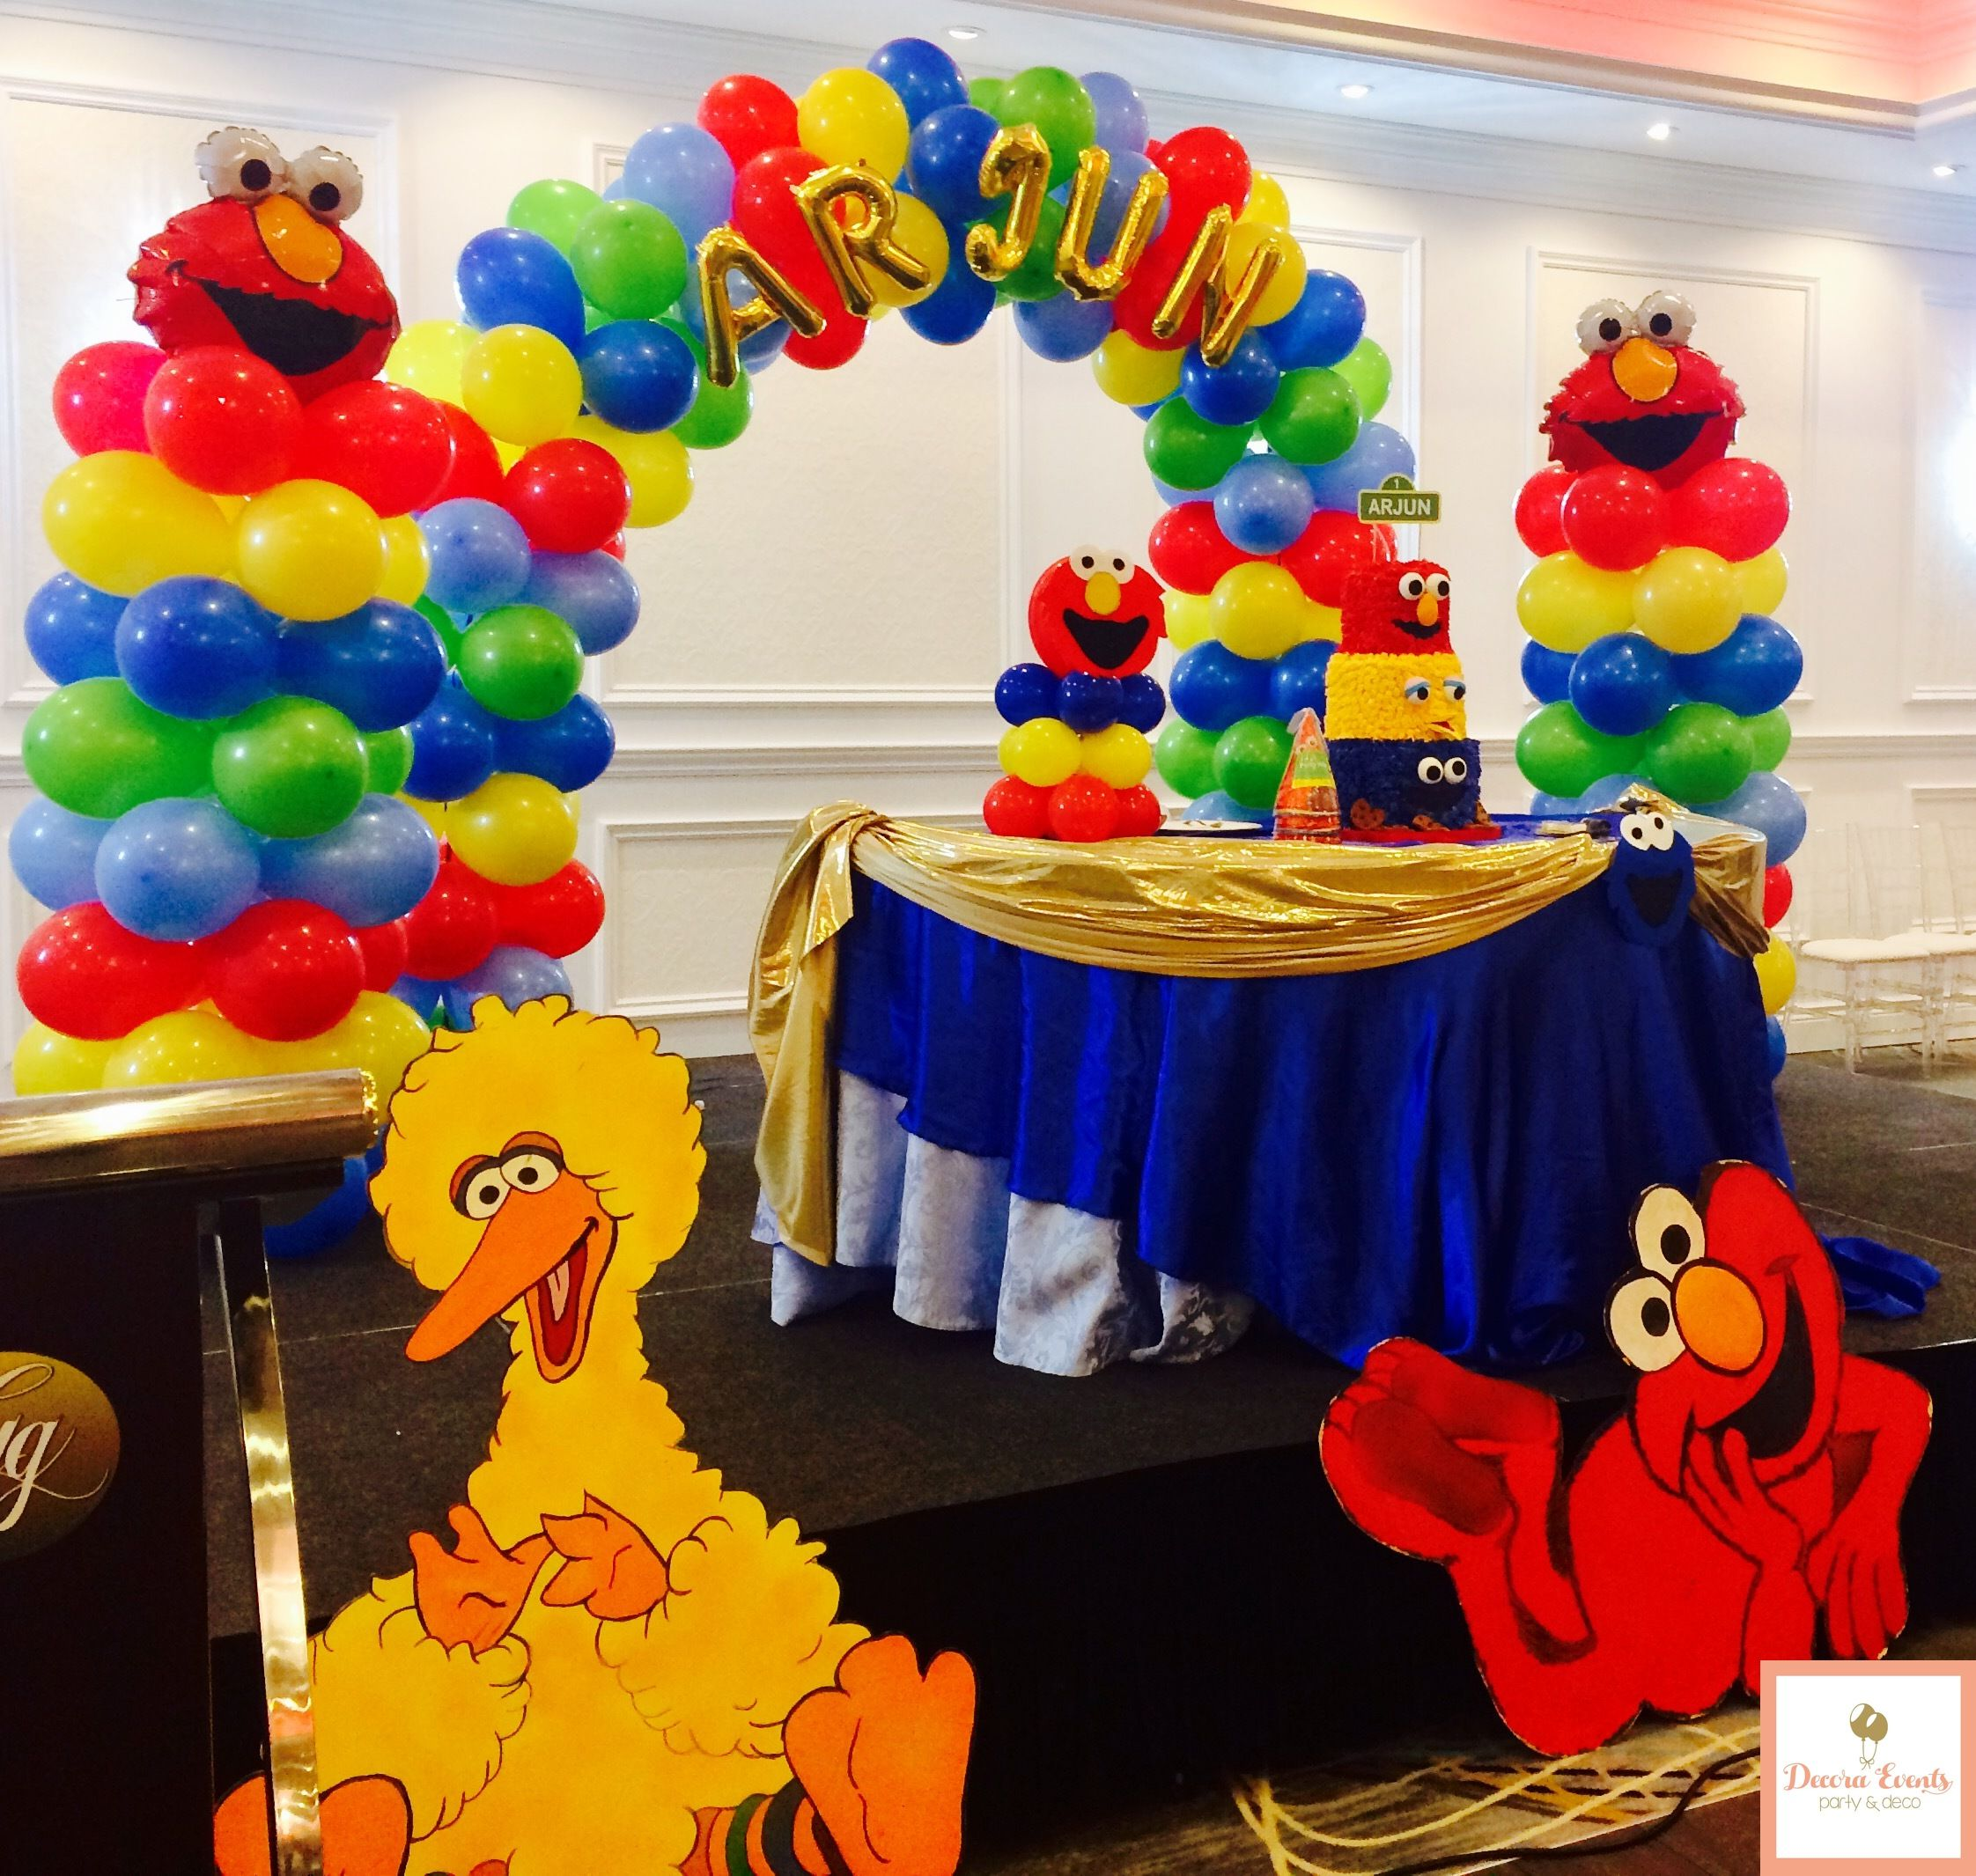 A Cake Table Decoration Combined With Some Columns Arch And Characters Birthday Party Cakedecorating Balloons Balloonscolumns Elmo Sesamestreet